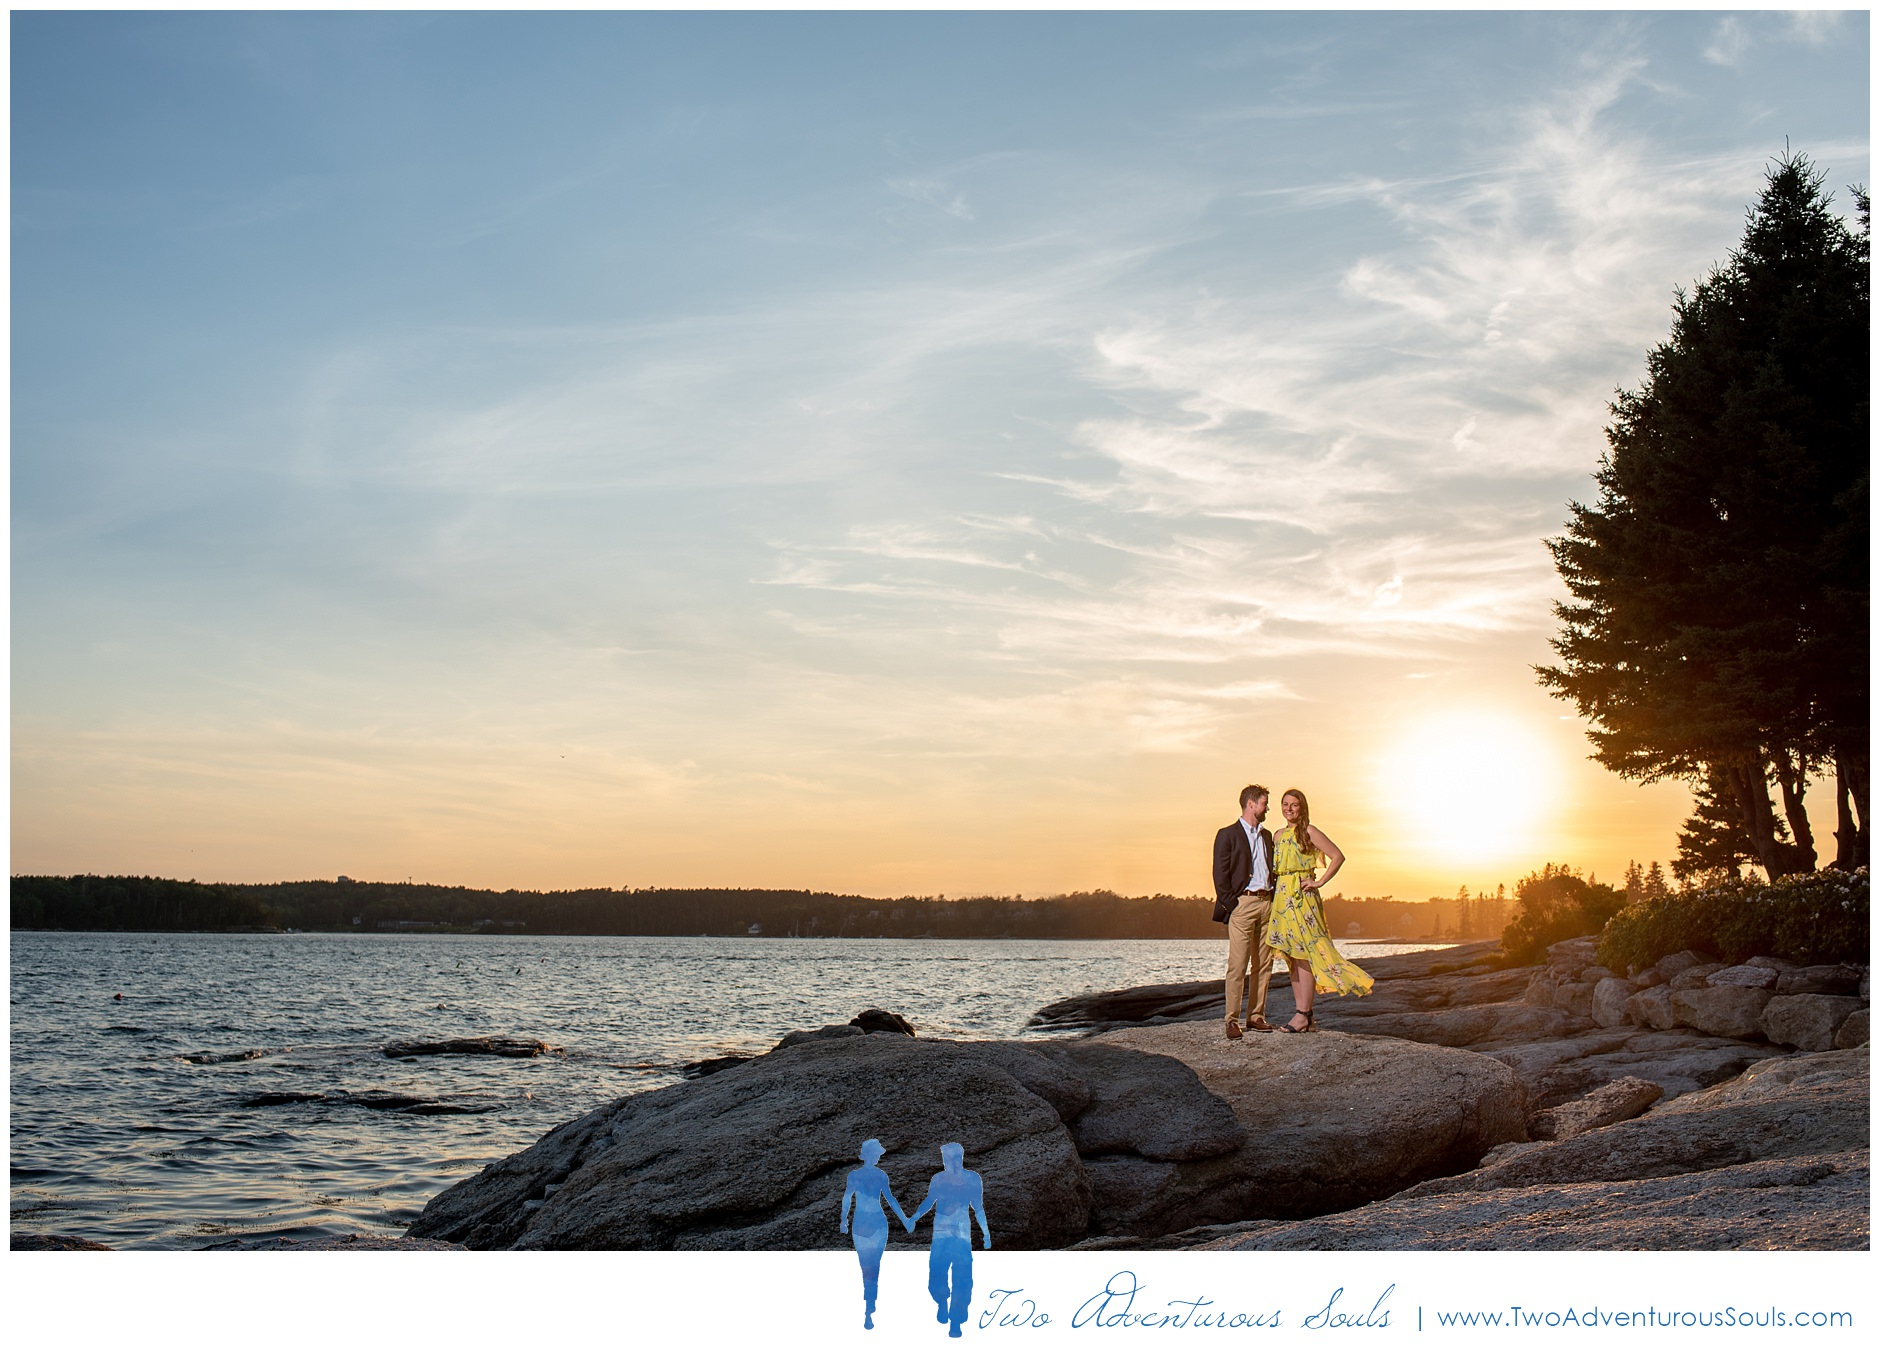 070818 - Leanne & Tyler - engaged-35_Boothbay Harbor Wedding Photographers, Boothbay Engagement Session.jpg